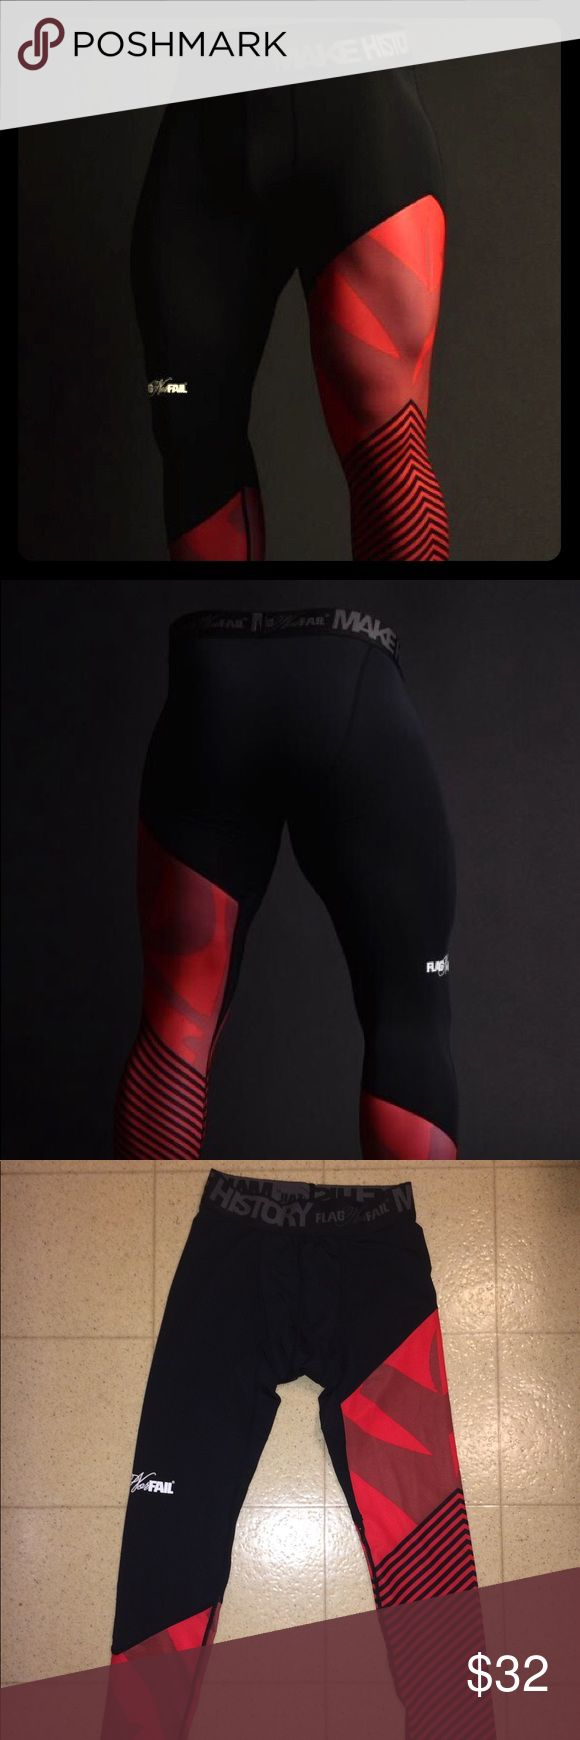 NEW Flag Nor Fail Men's Compression Pants Size S Brand New Flag Nor Fail men's compression leggings in black and red size Small. Never worn. Perfect for mens for athletic purposes.   Fit waist 29 Flag Nor Fail Pants Leggings